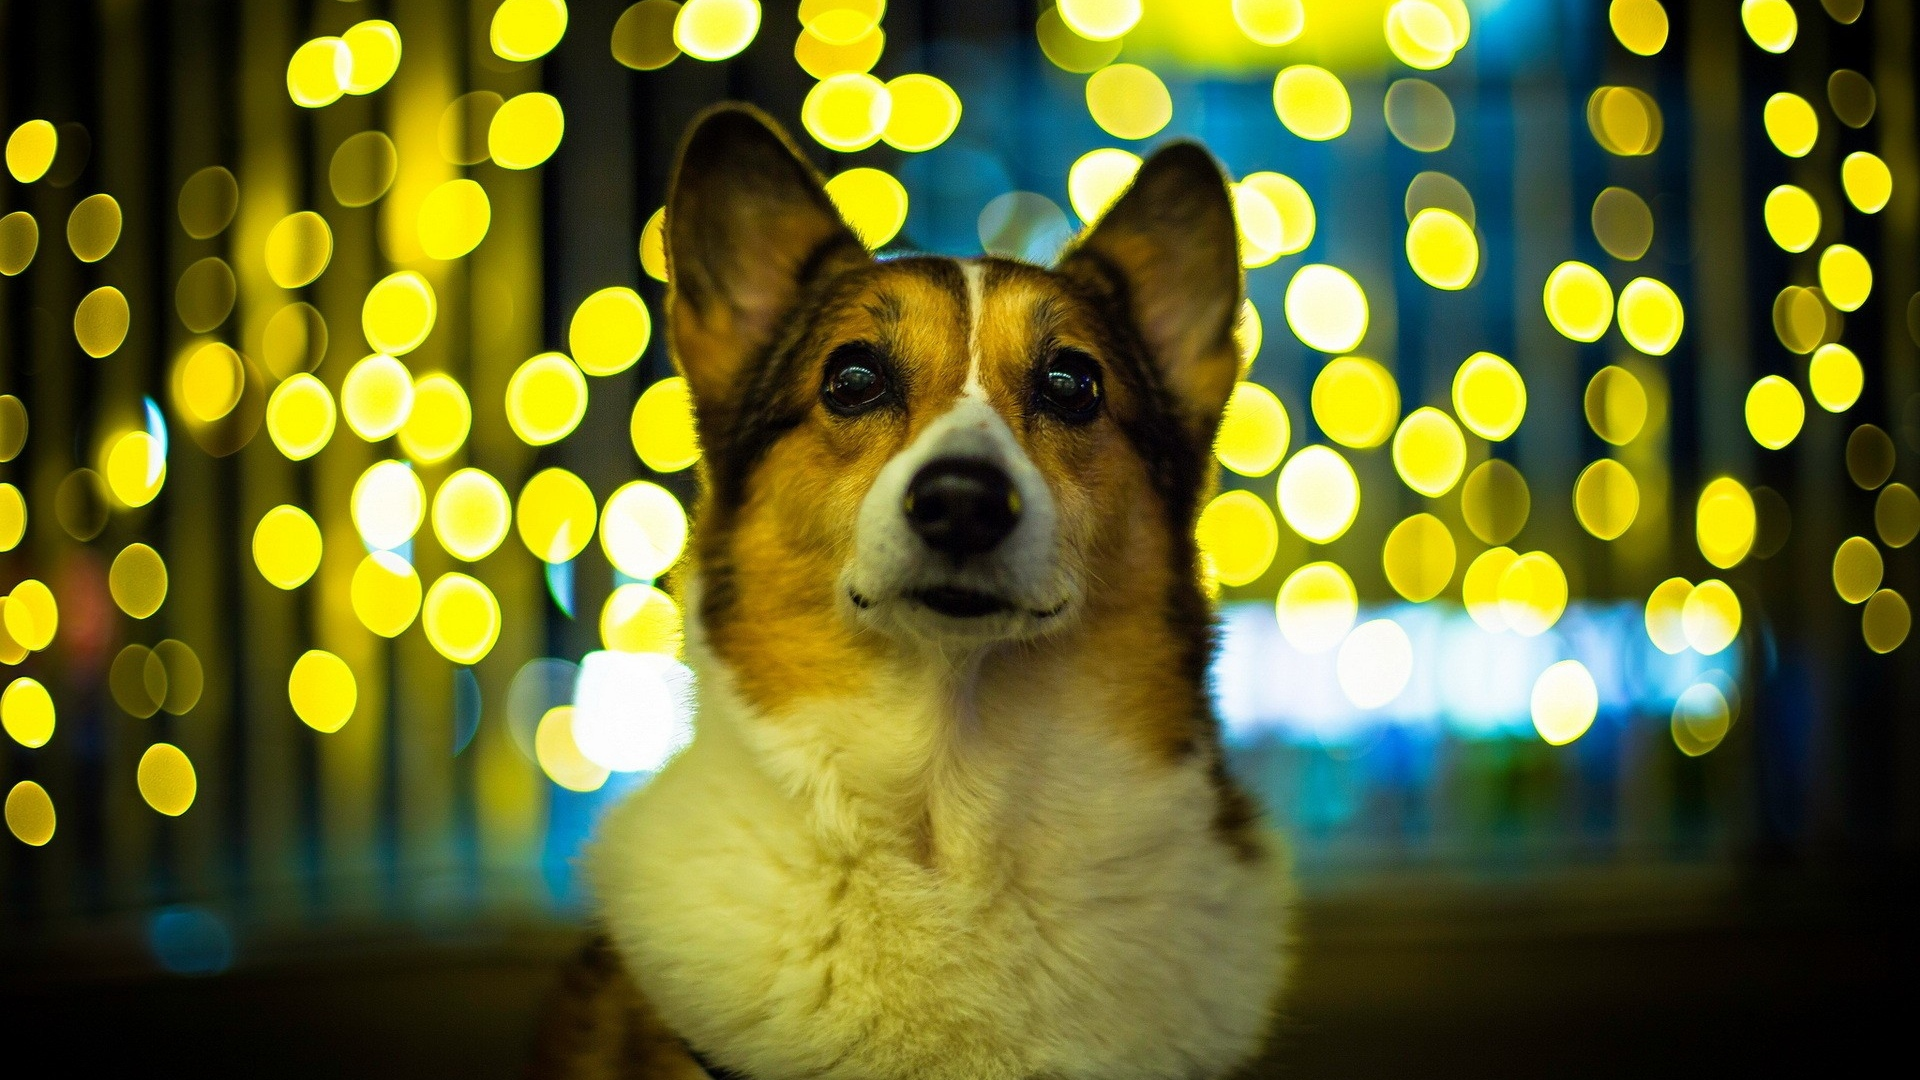 Welsh-Corgi-1920x1080-wallpaper-wp38011952